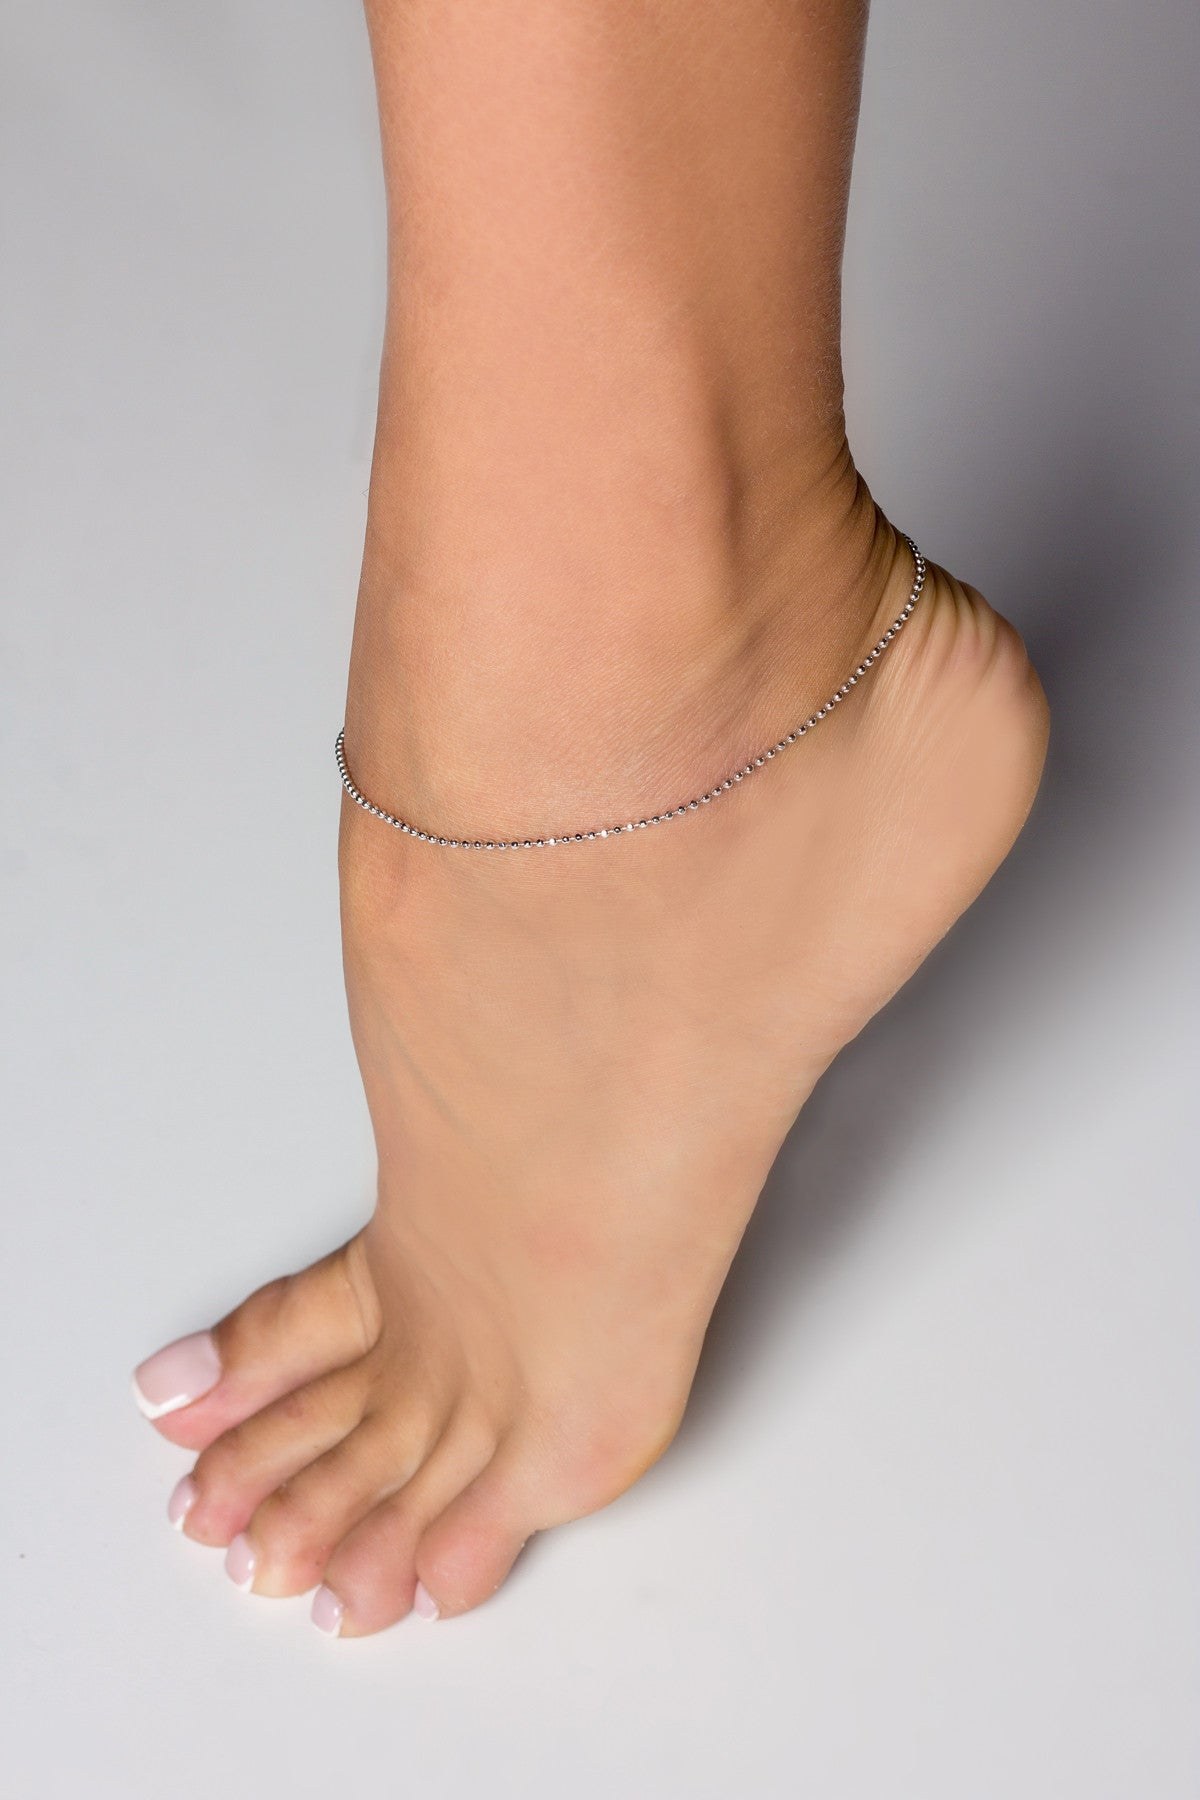 anklet number product silver h jewellery diamond chain together bonded l webstore gold type samuel ankle figaro bracelet